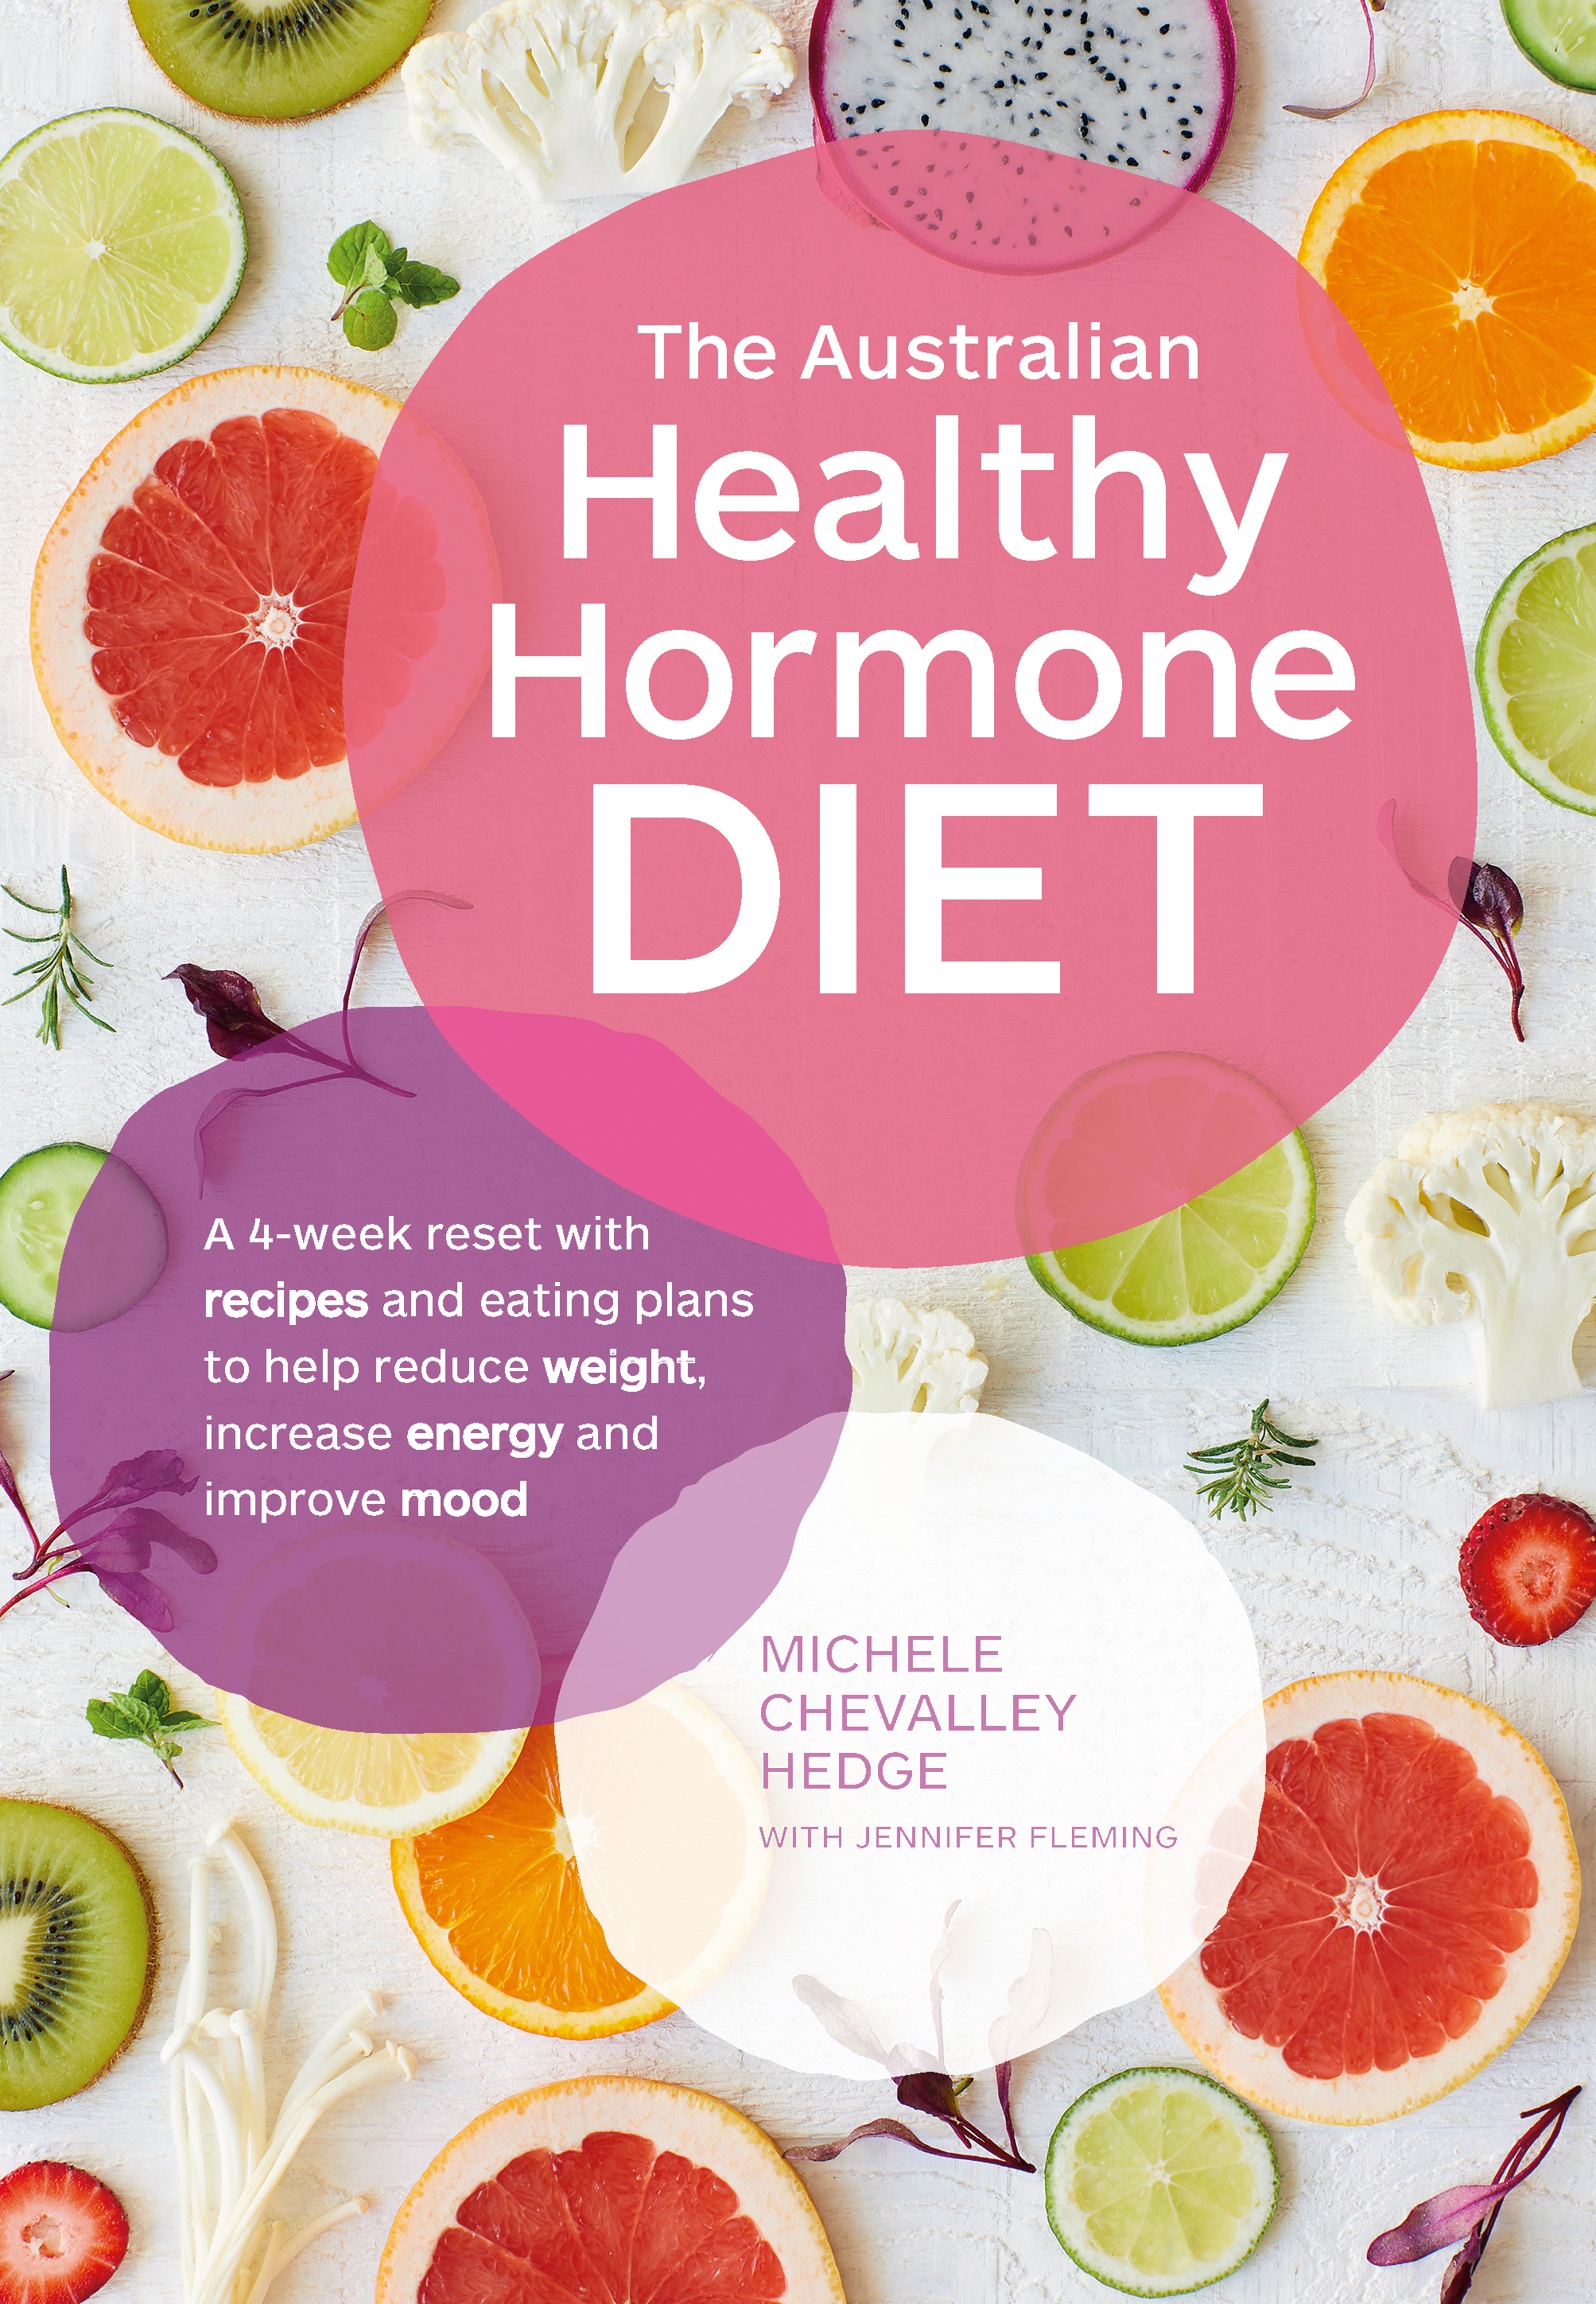 The Australian Healthy Hormone DietThe four-week lifestyle plan that will transfor... by Jennifer Fleming,Michele Chevally Hedge, ISBN: 9781760553166